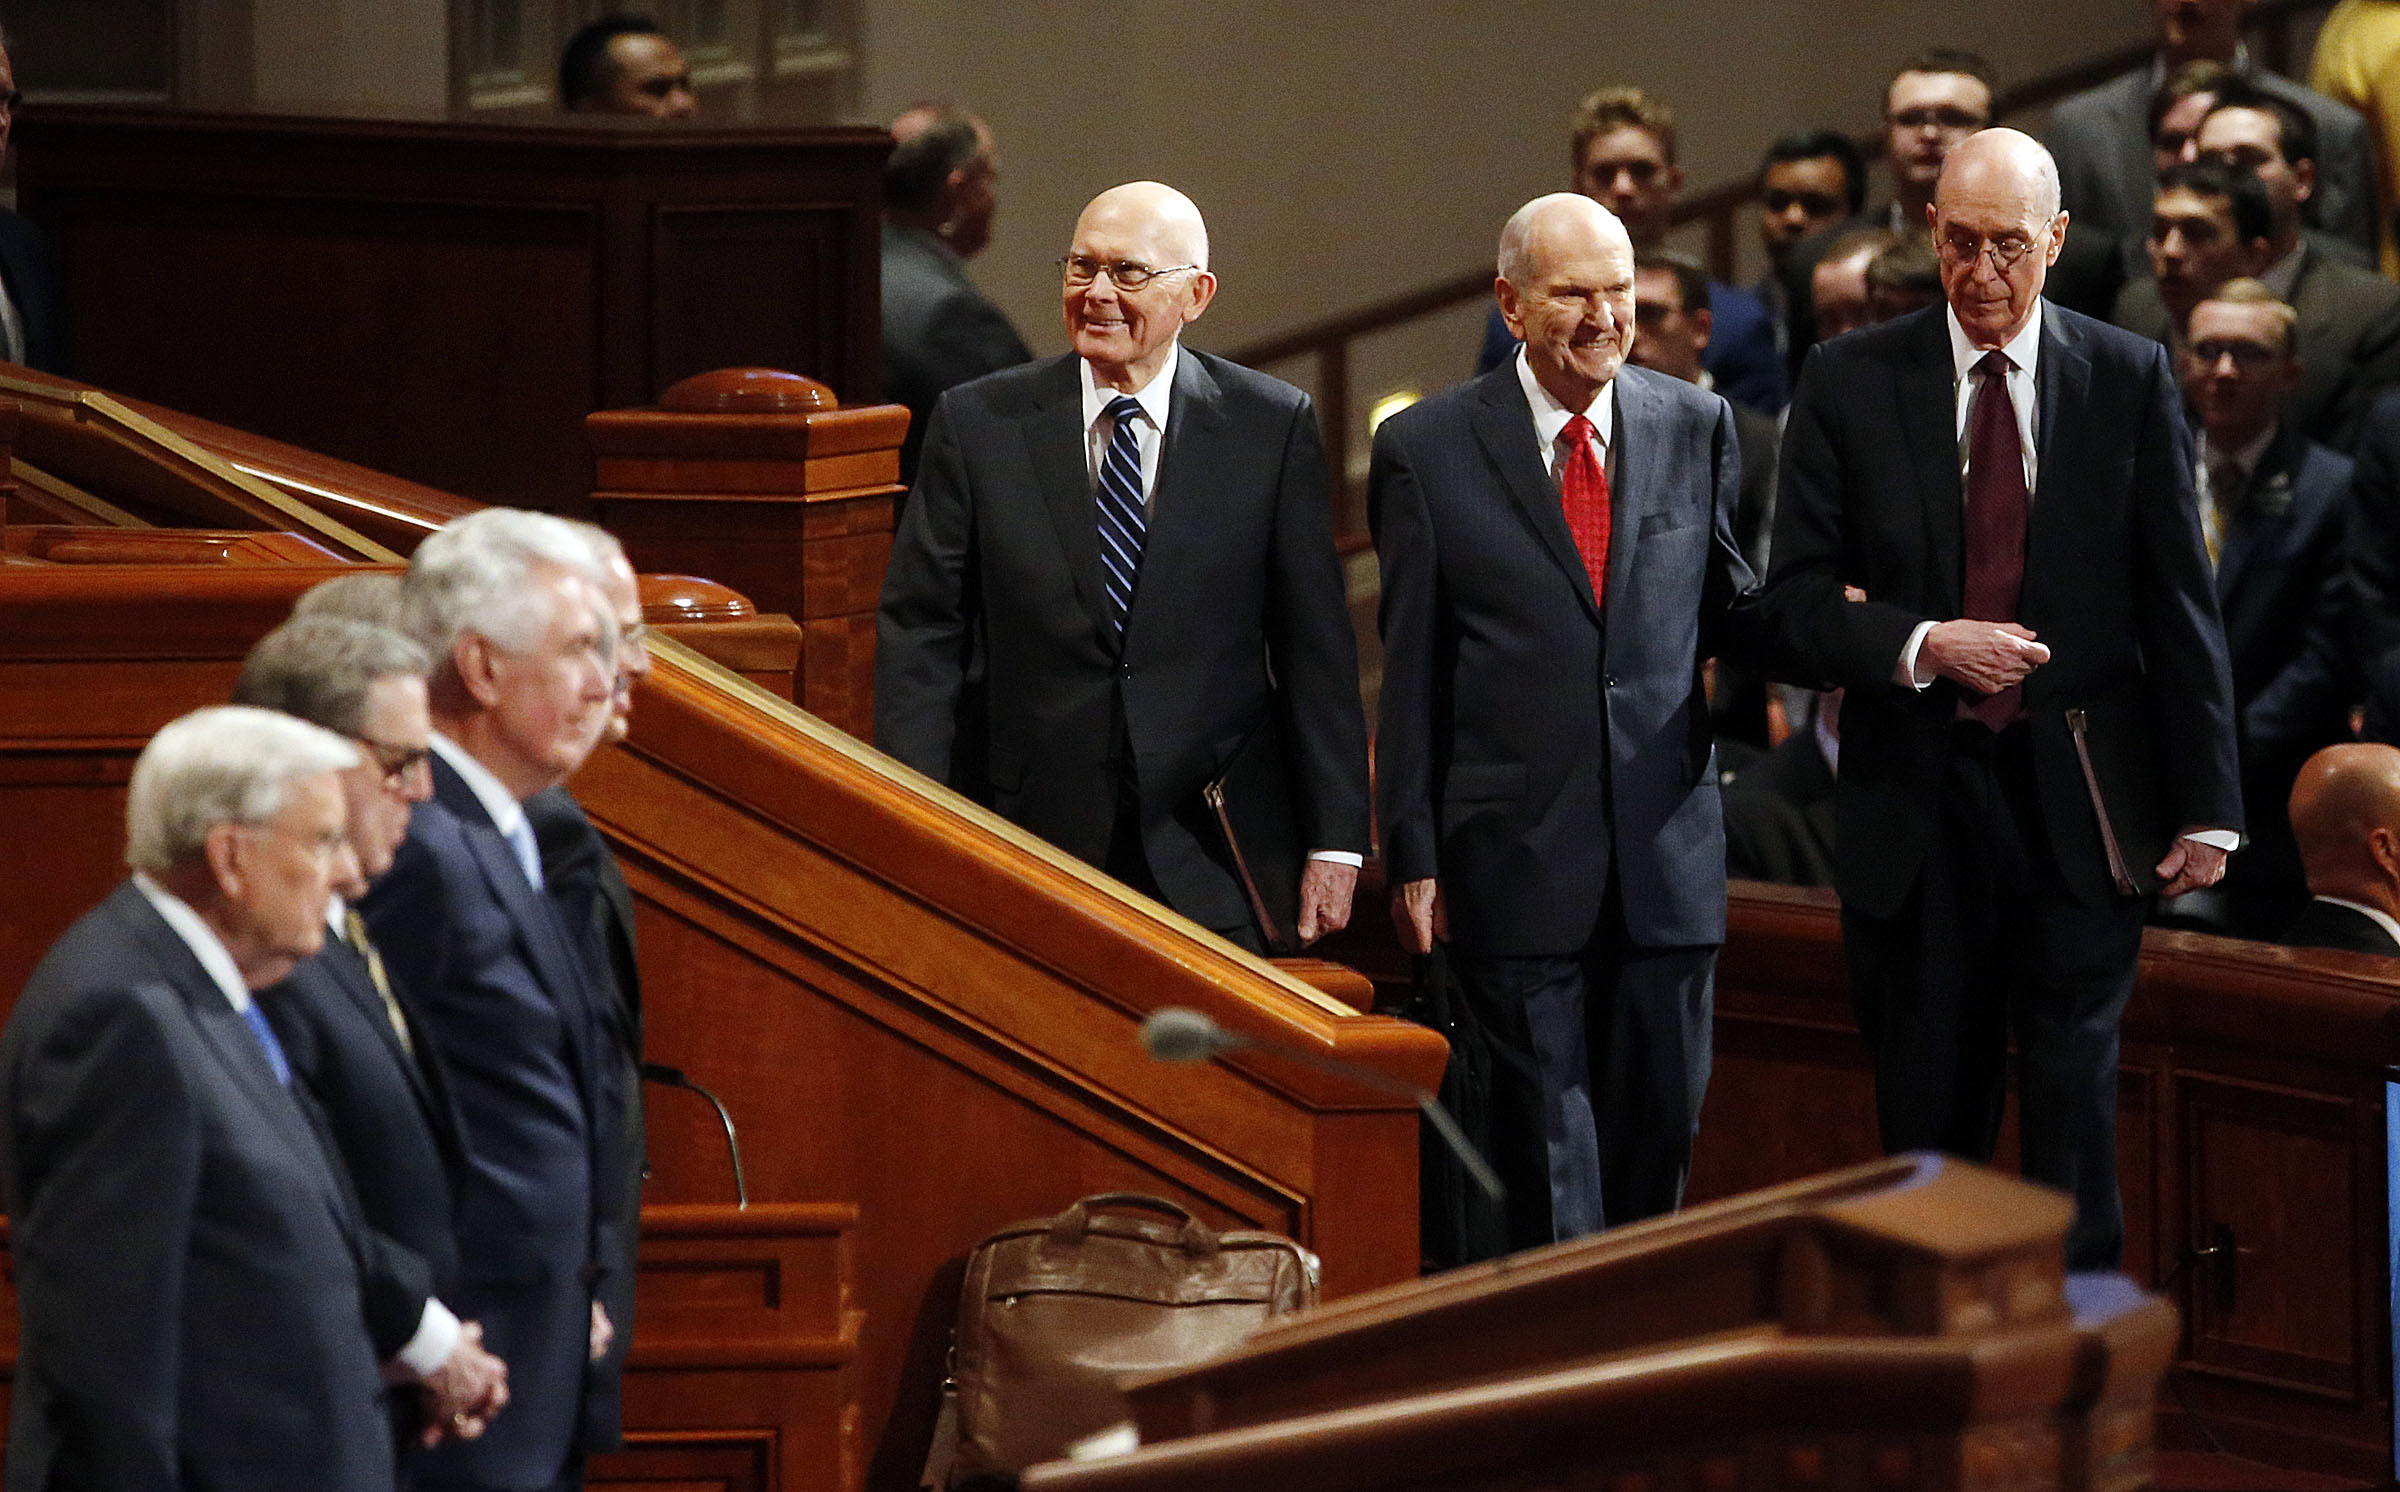 President Russell M. Nelson of The Church of Jesus Christ of Latter-day Saints, center, and his counselors, President Dallin H. Oaks, first counselor in the First Presidency, left, and President Henry B. Eyring, second counselor in the First Presidency, right, enter the Conference Center for the priesthood session of the 189th Annual General Conference in Salt Lake City on Saturday, April 6, 2019.